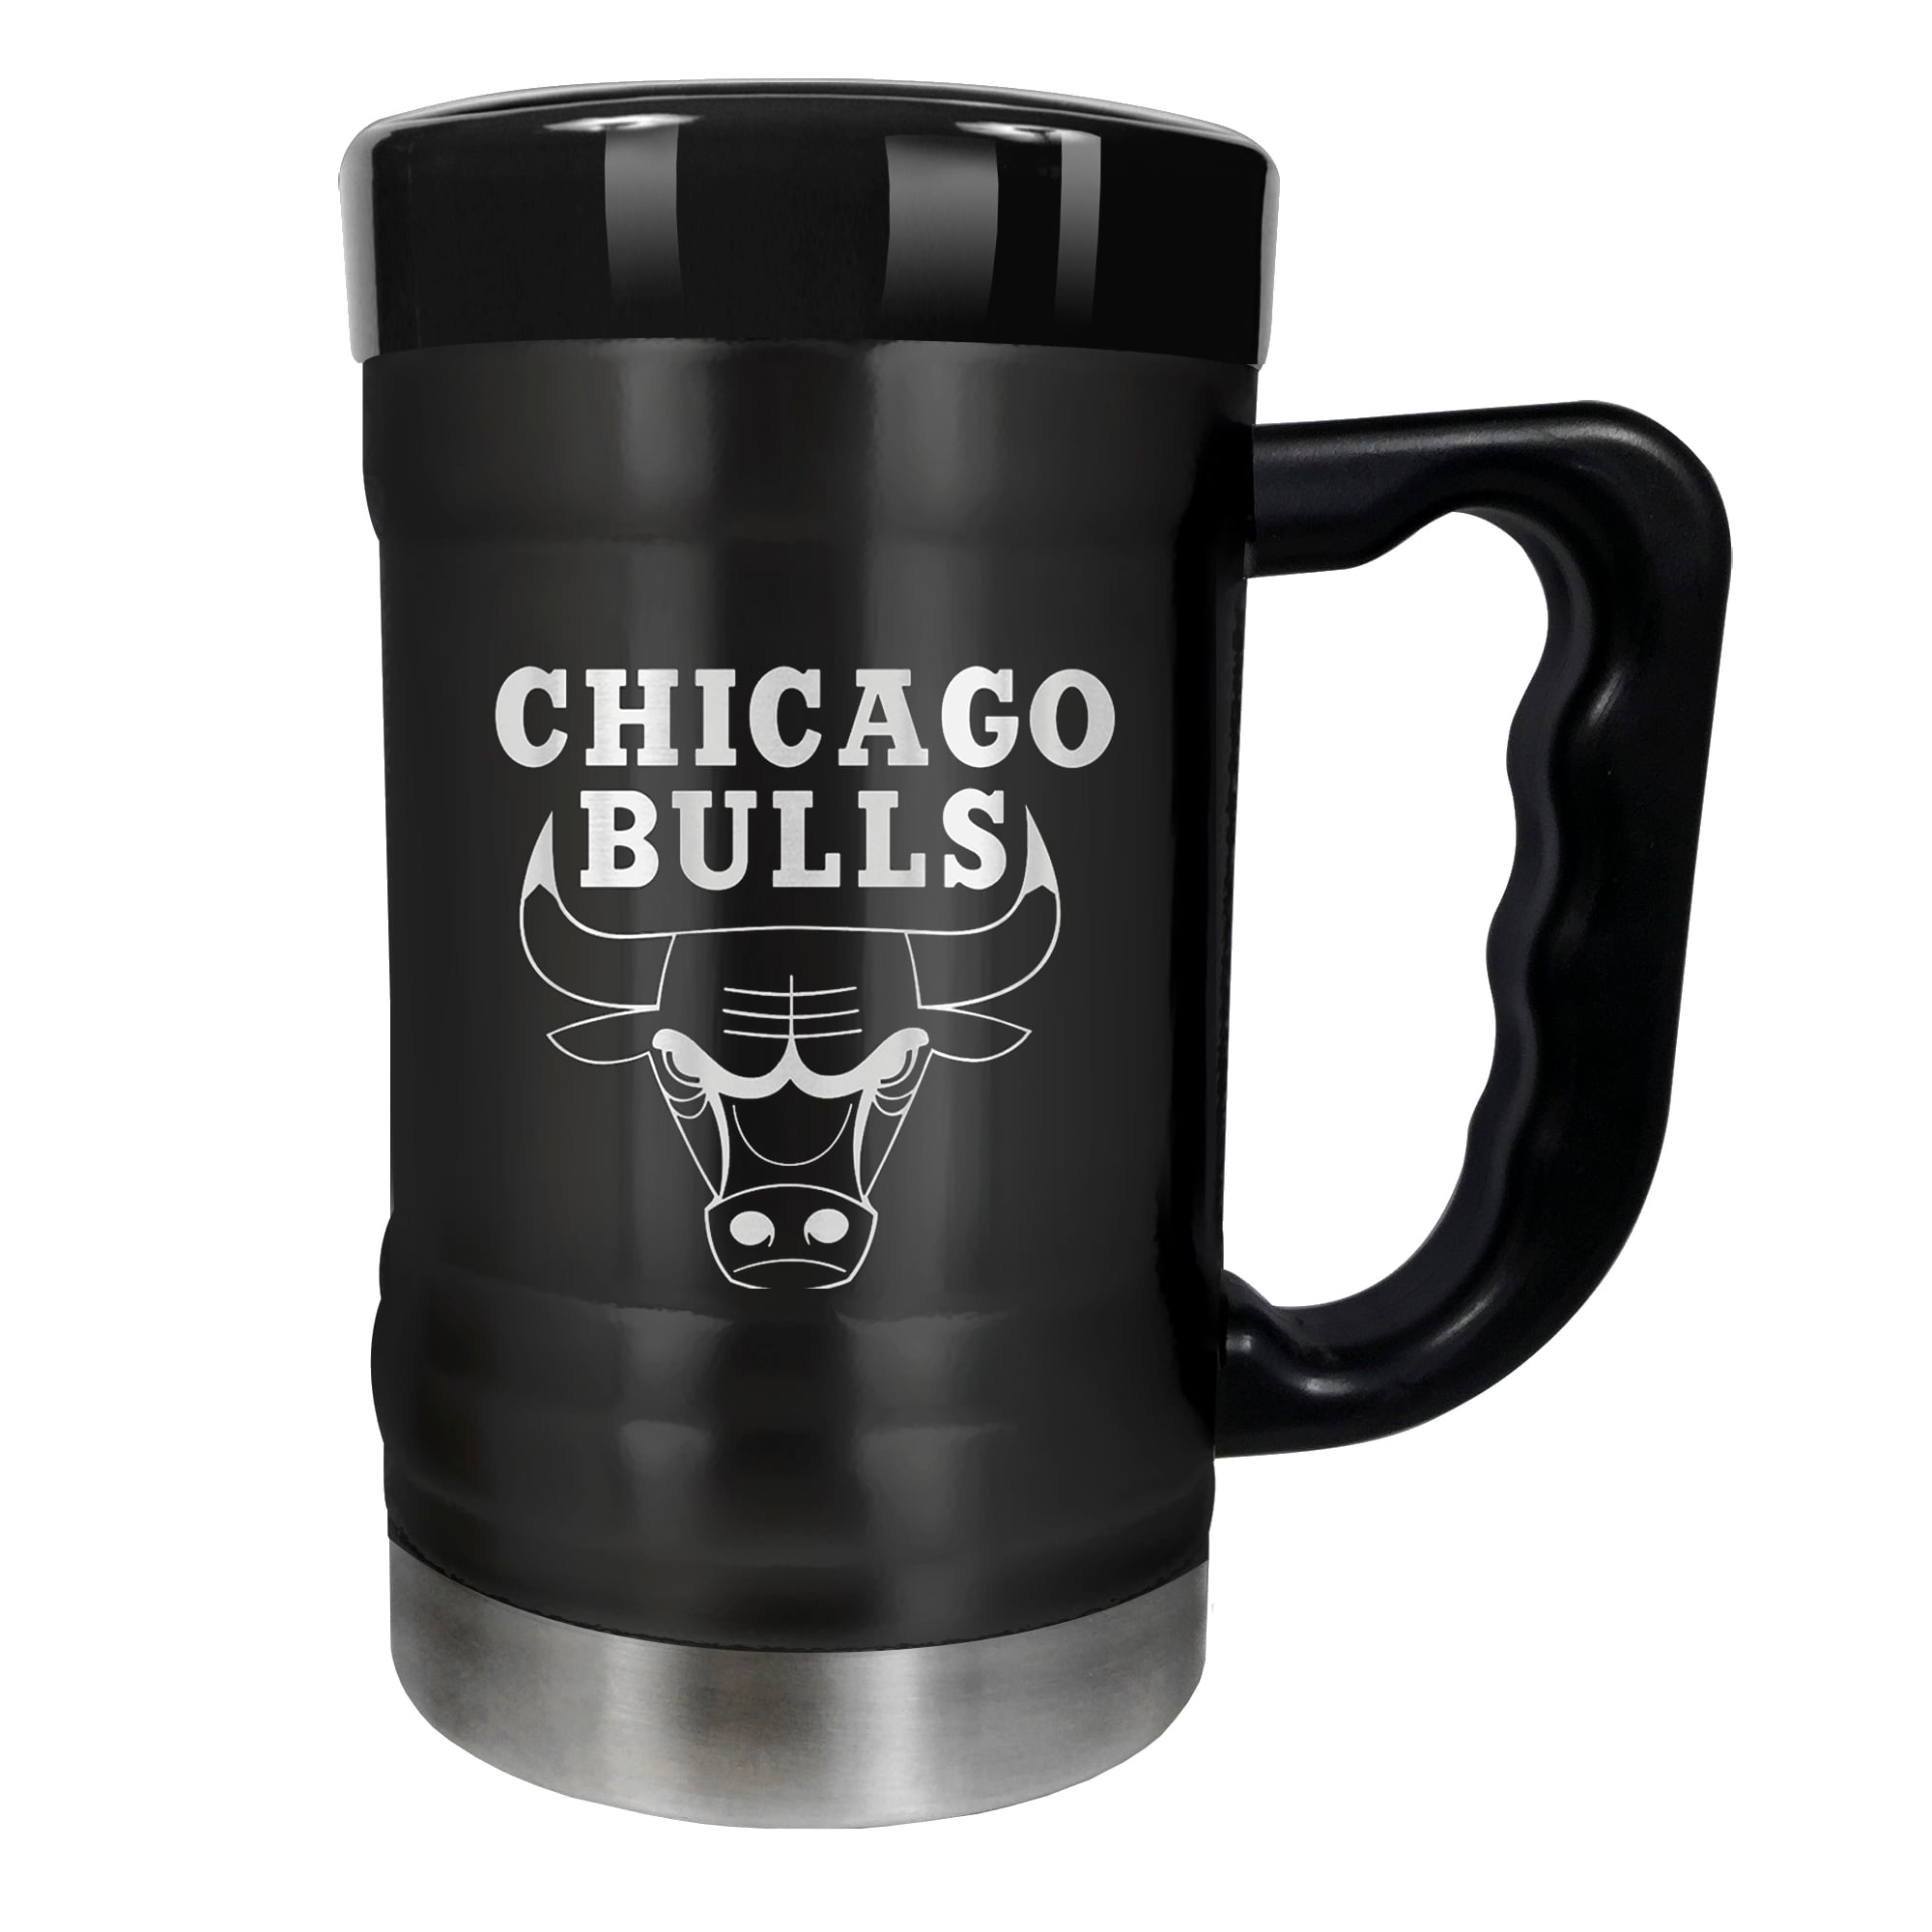 Chicago Bulls 15oz. Stealth Coach Coffee Mug - Black